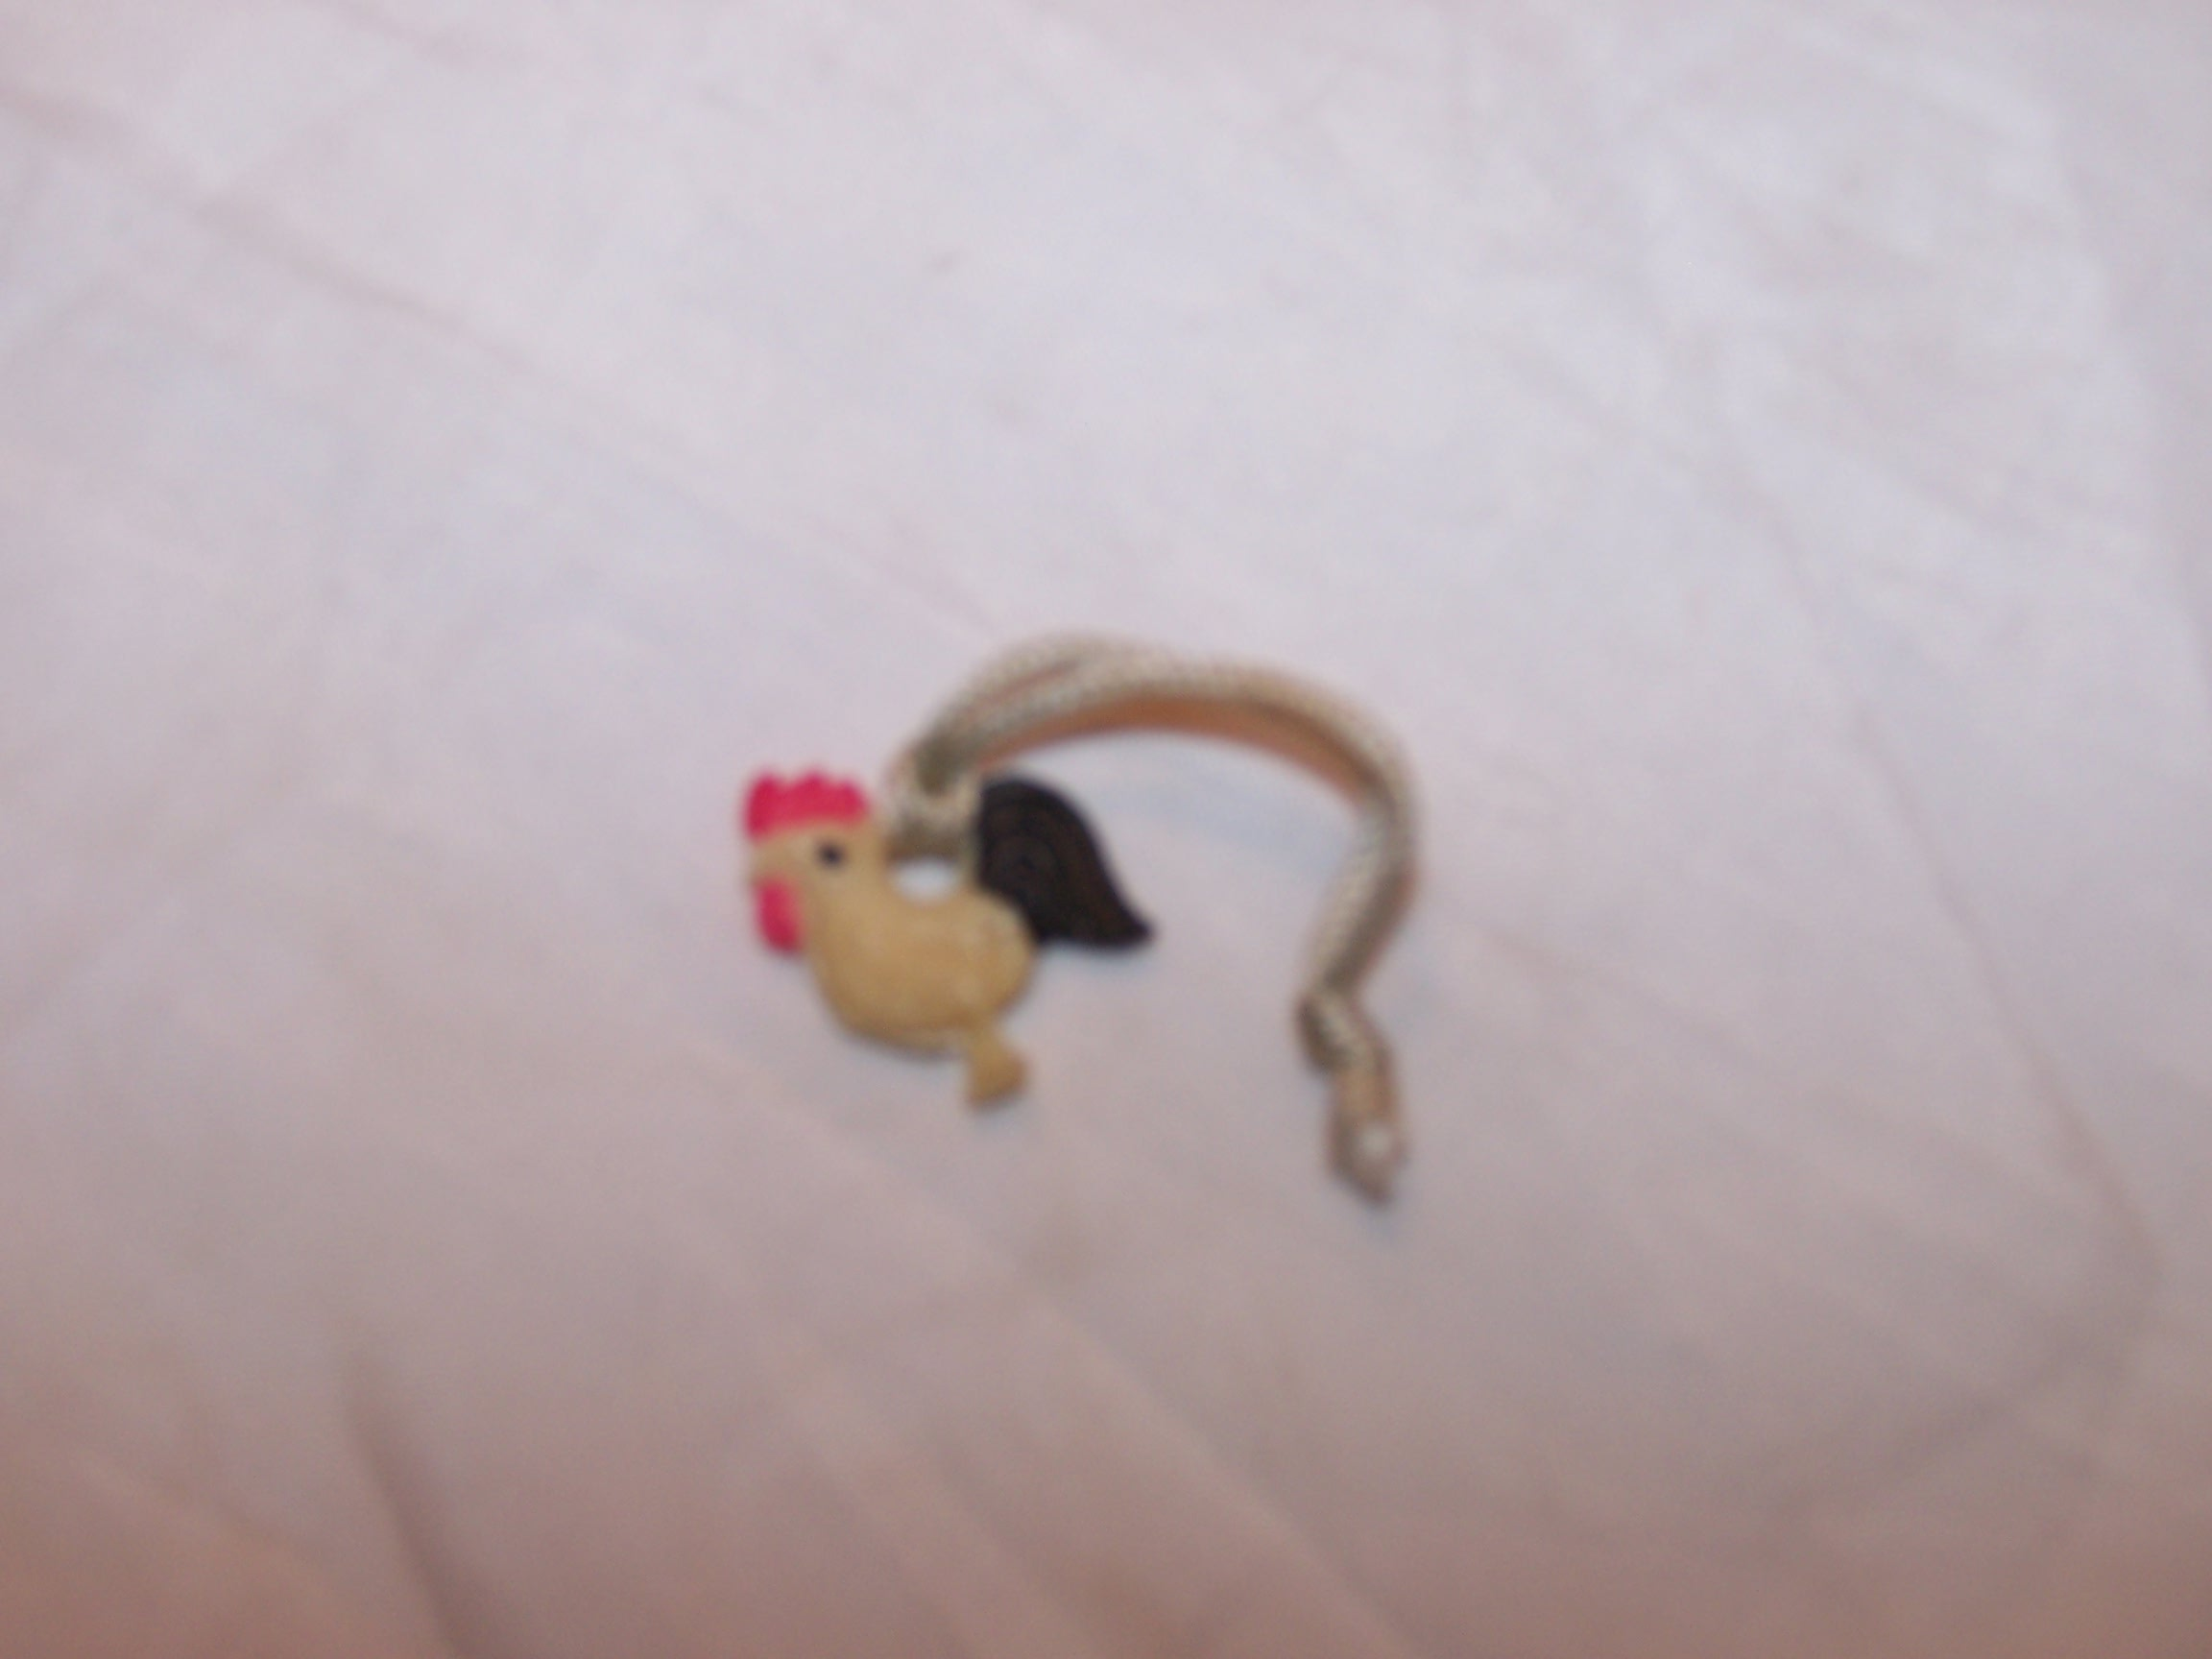 Image 1 of Chicken Gumball Prize, Plastic, Vintage